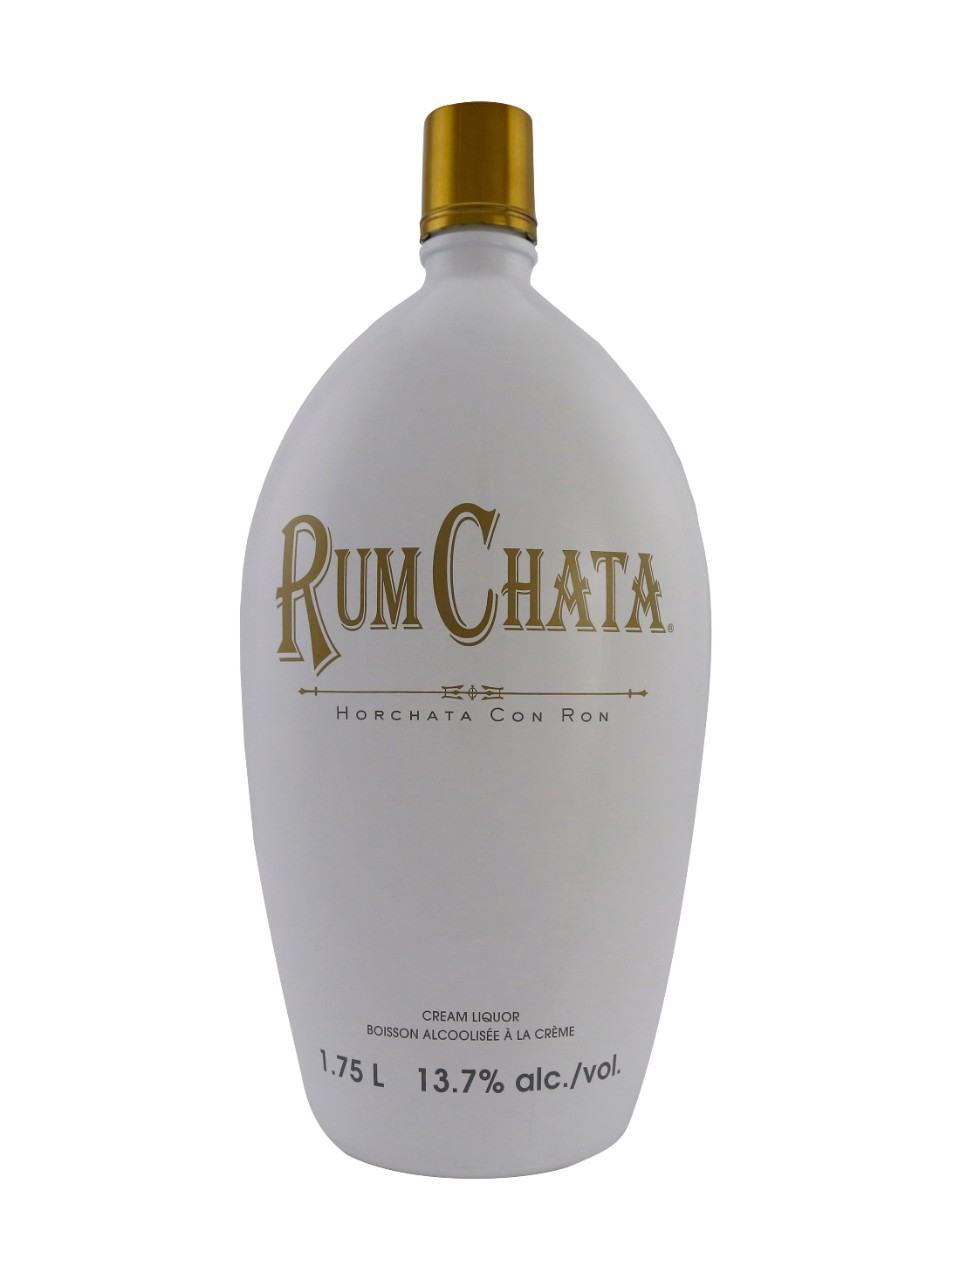 Rumchata from LCBO